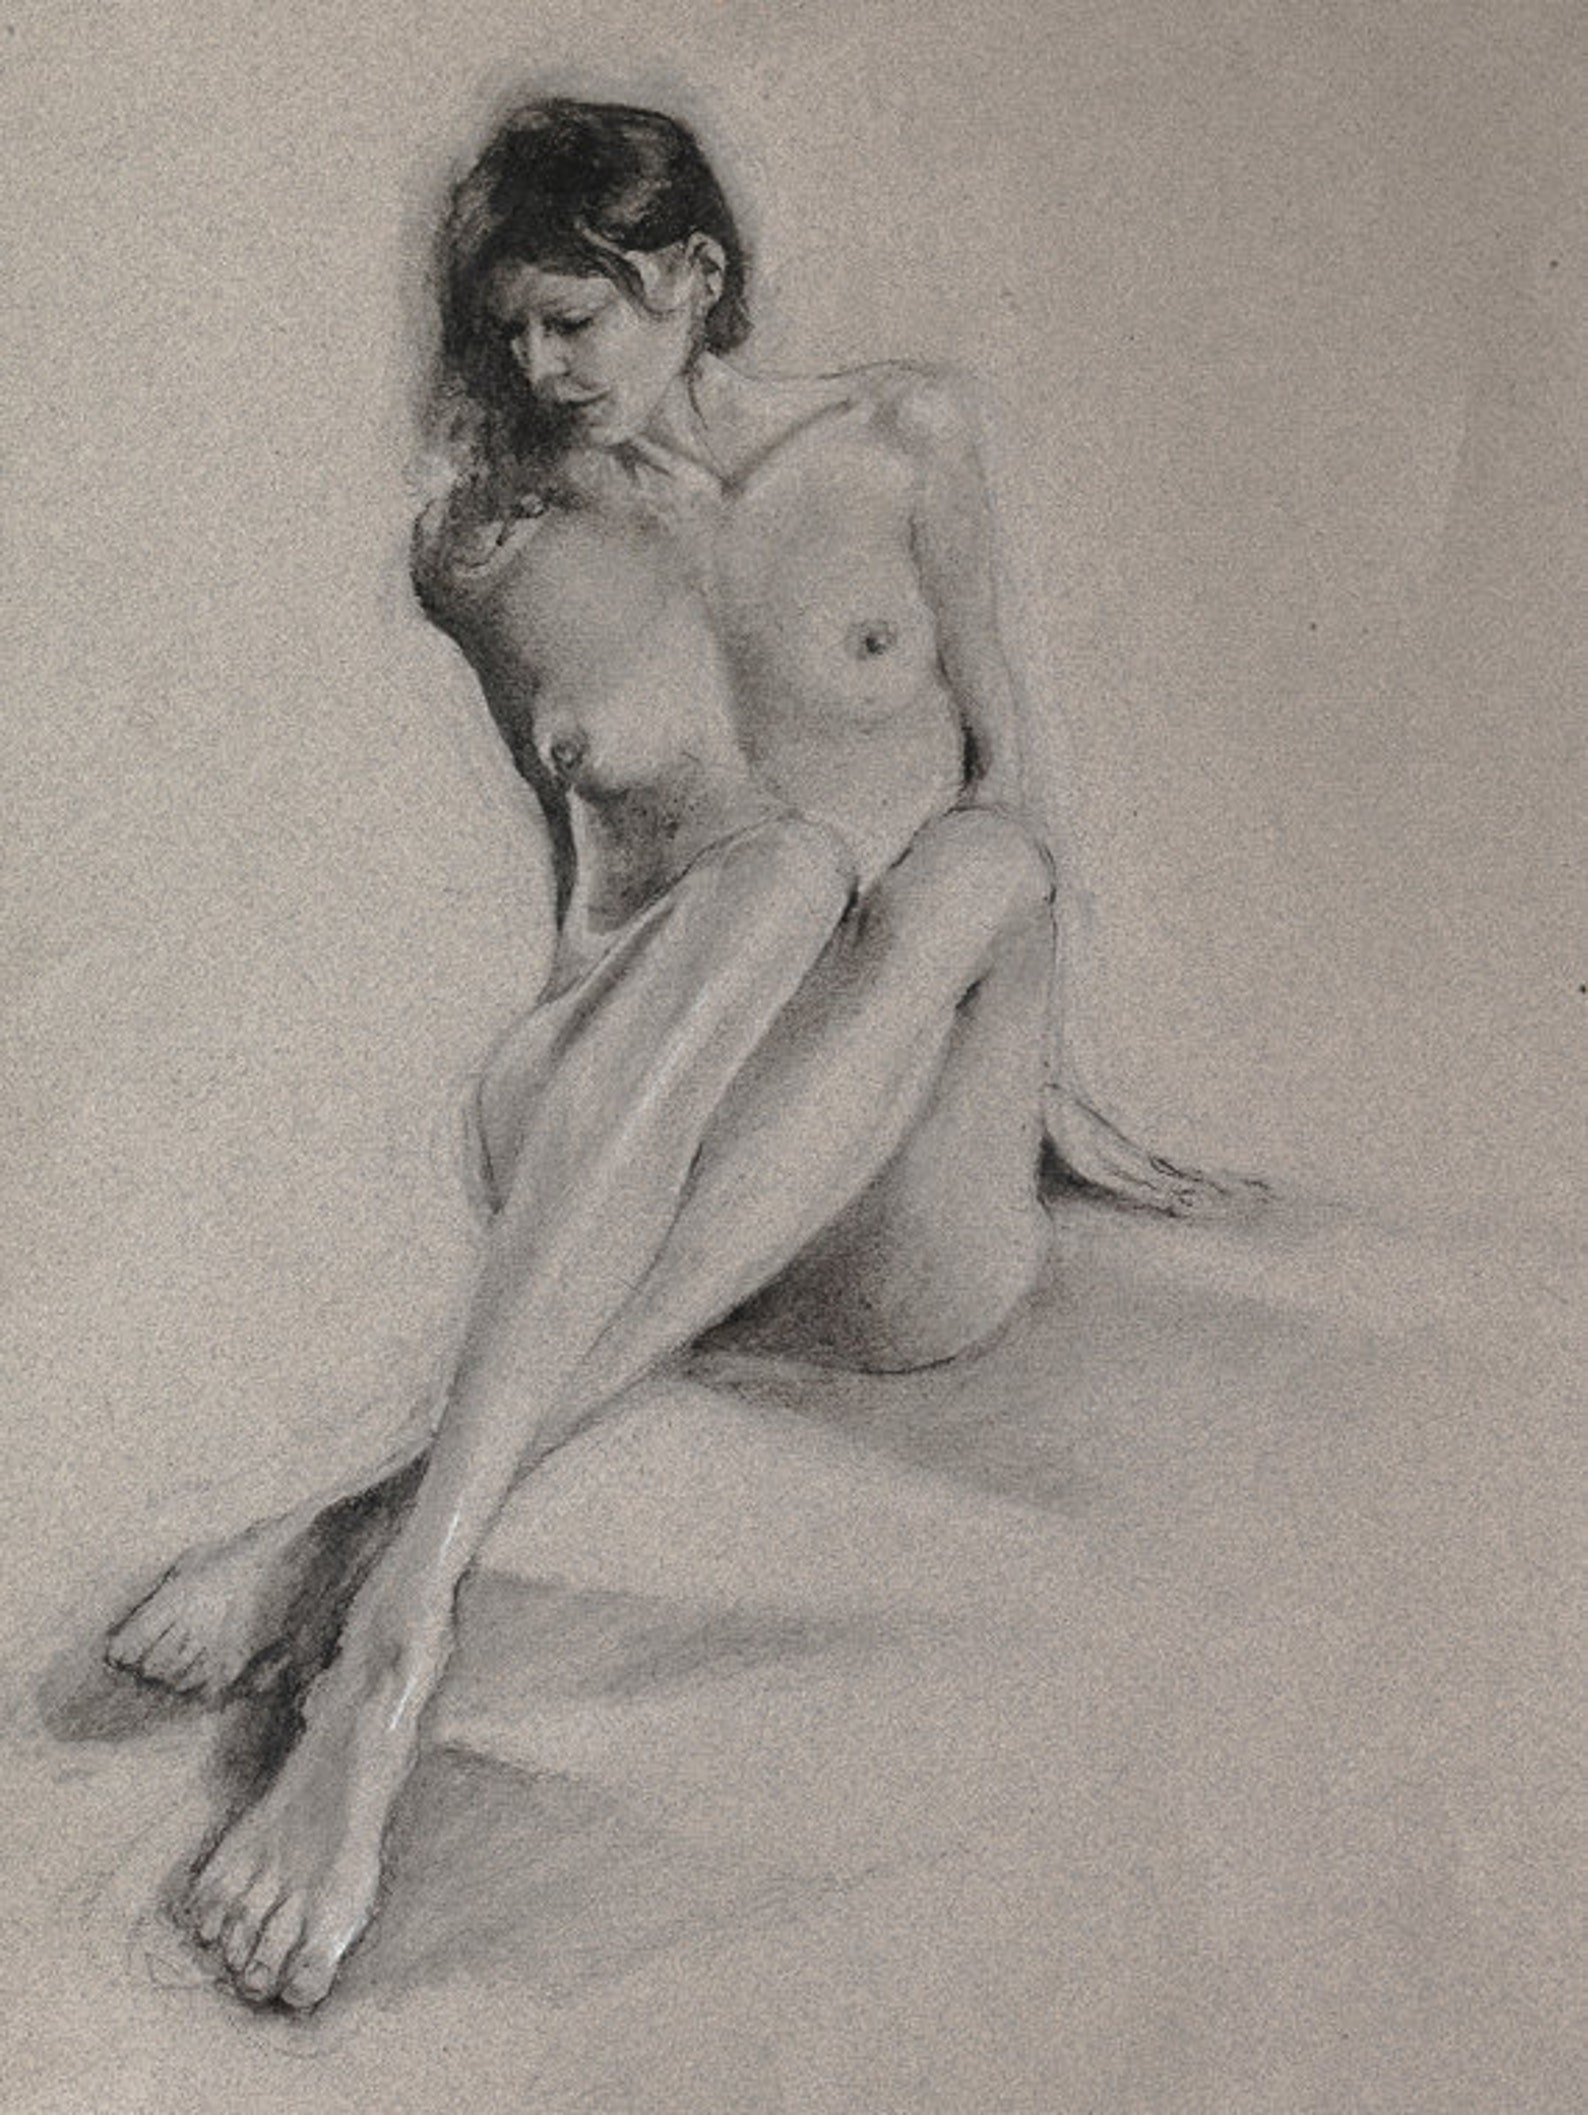 nude-figure-drawing-model-vag-tarzan-fuck-video